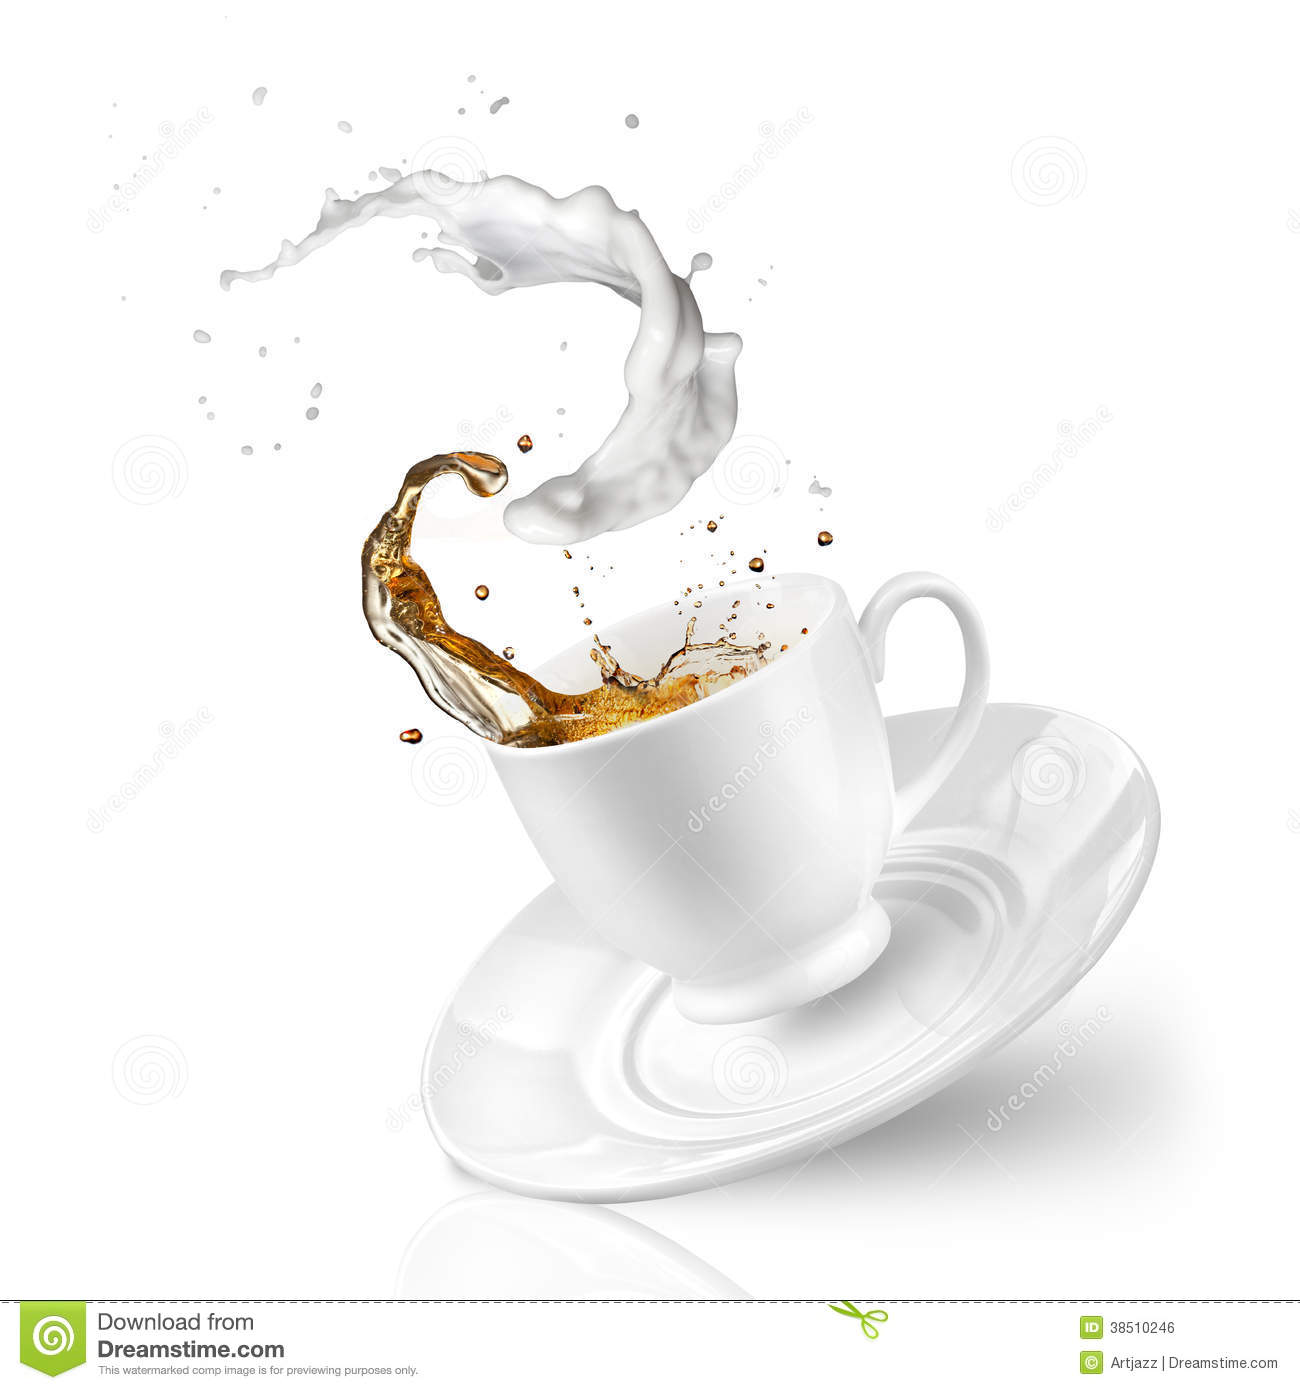 Free Kitchen Design App Splash Of Tea With Milk In The Falling Cup Isolated On